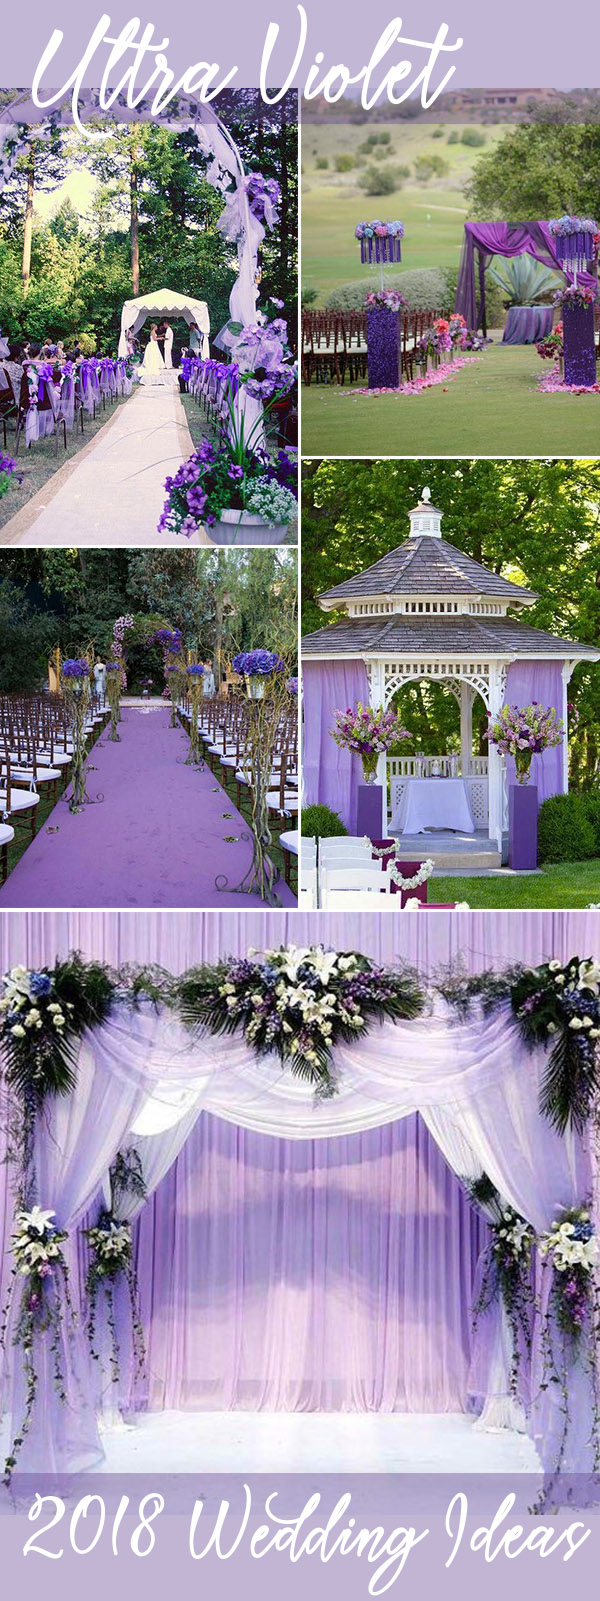 violet wedding ceremony and arch decoration ideas